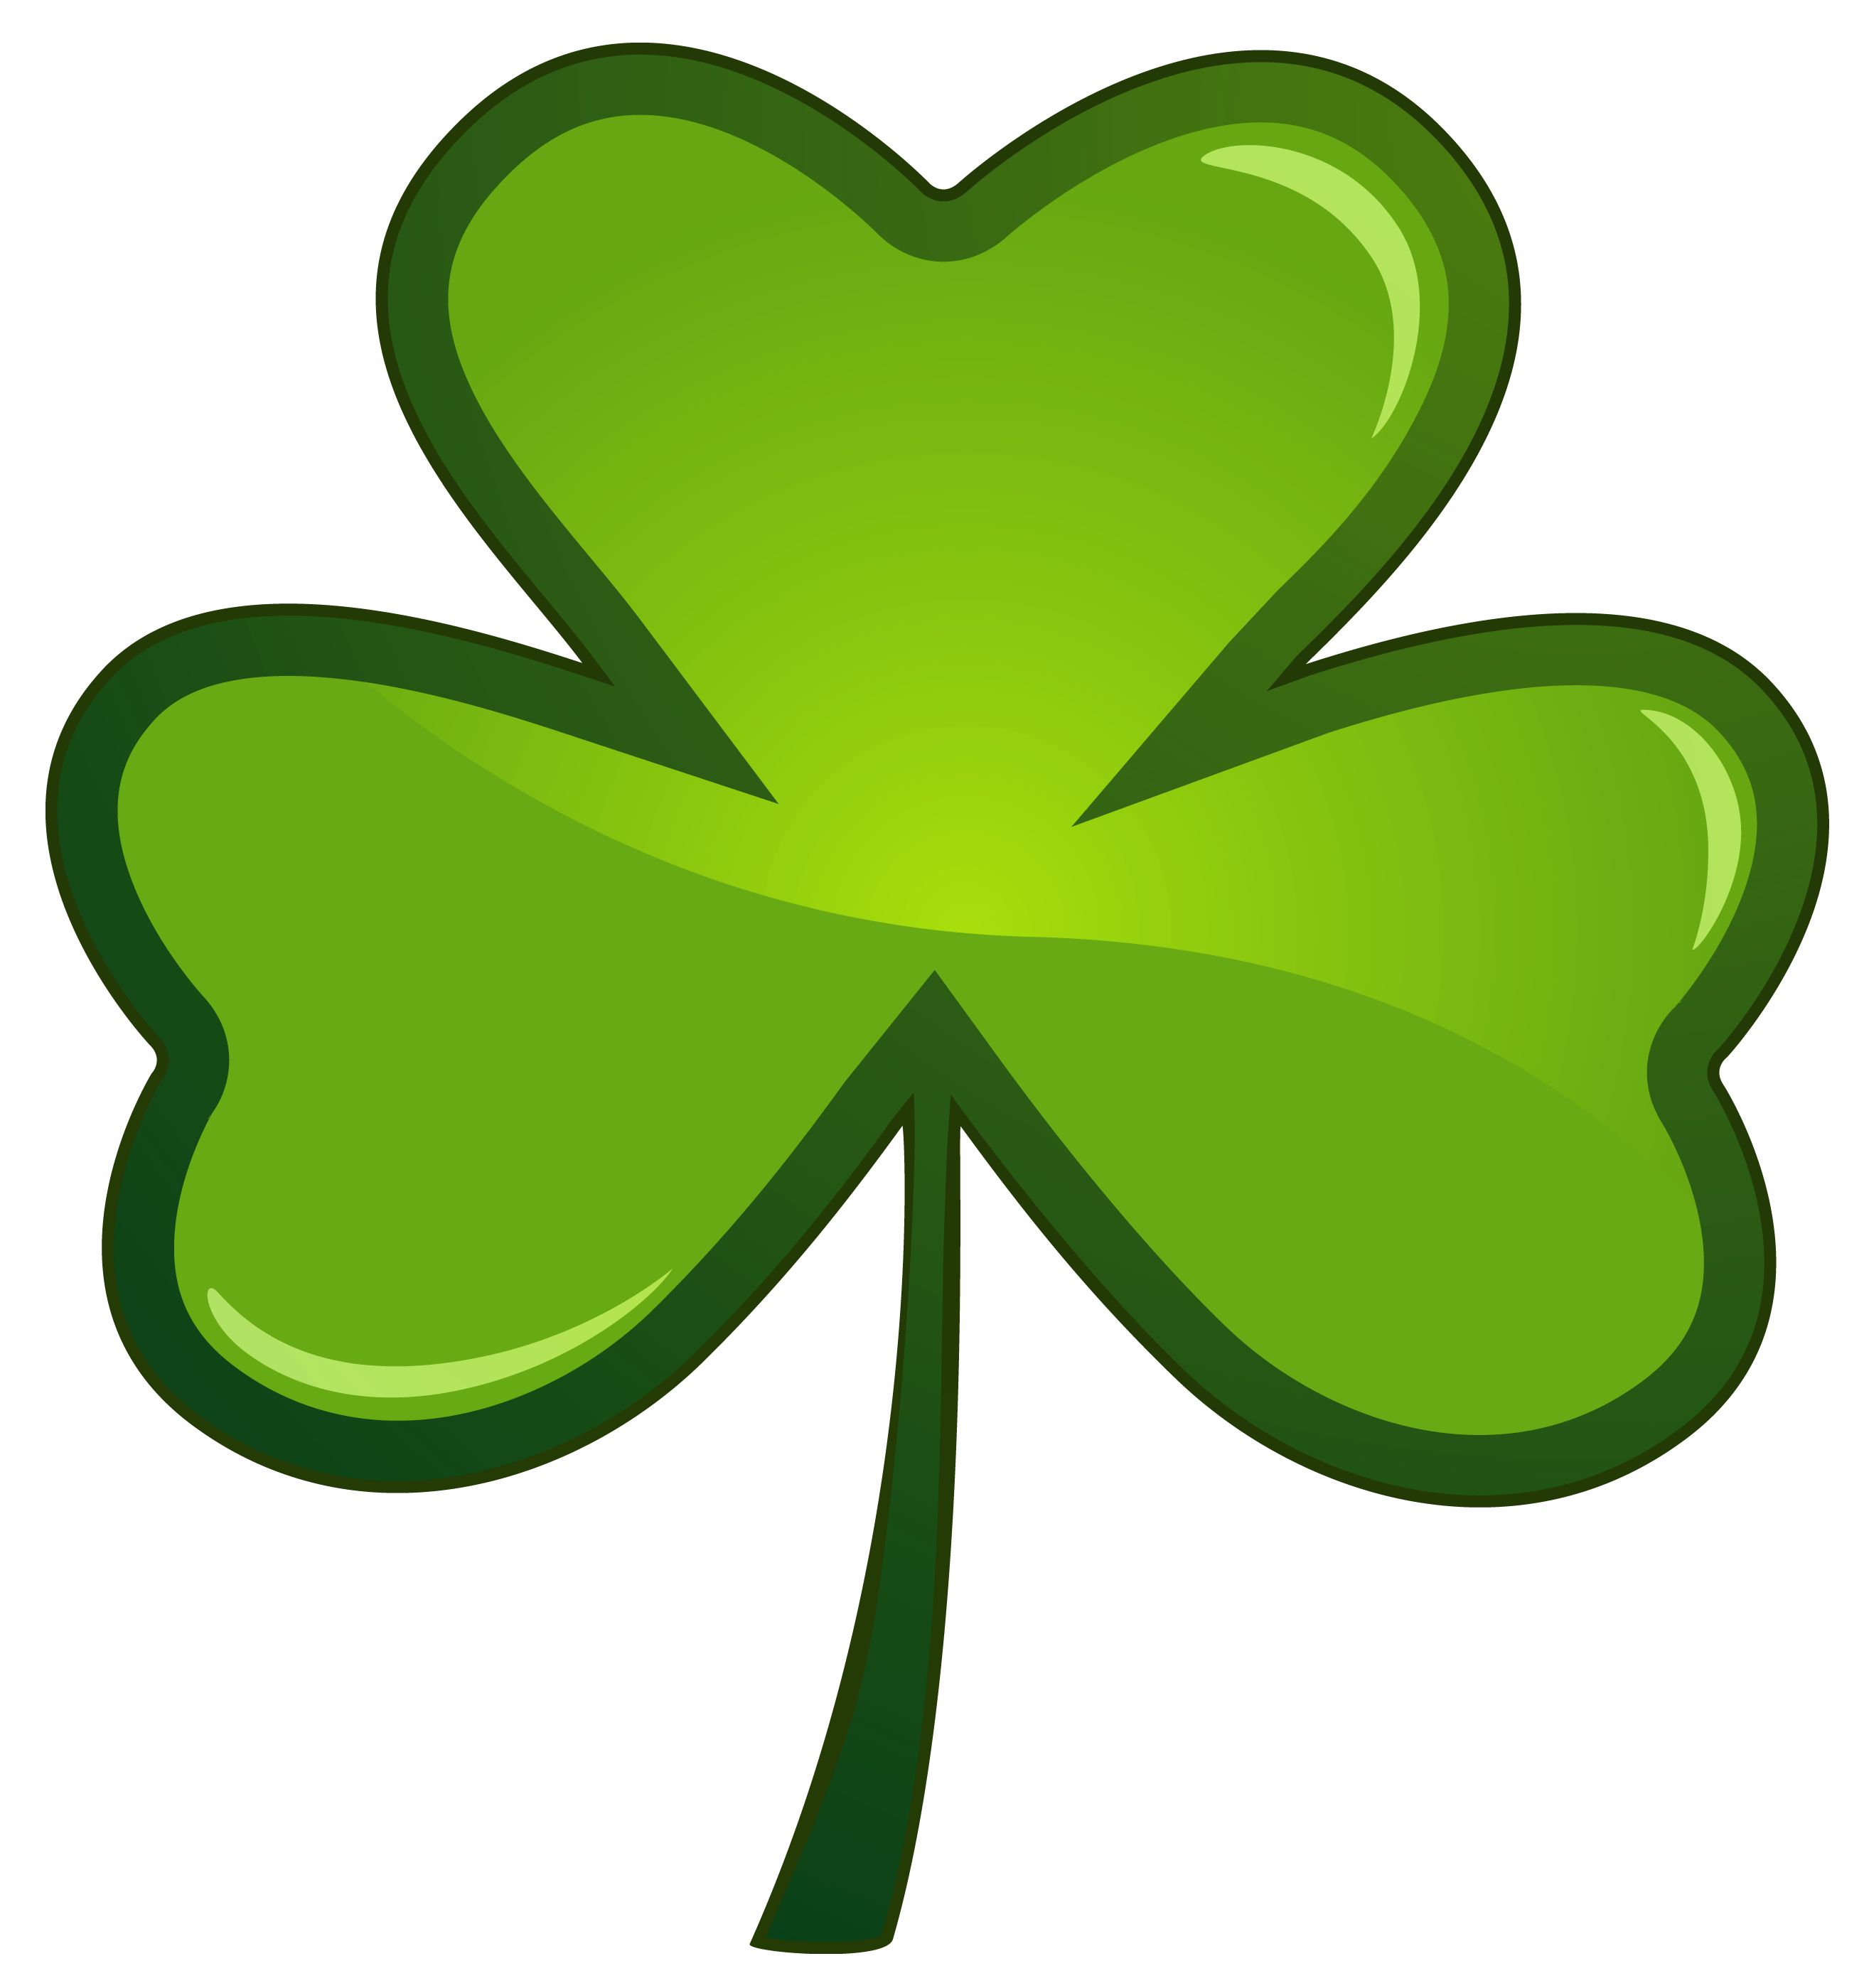 clipart library stock St patricks day . Shamrock clipart